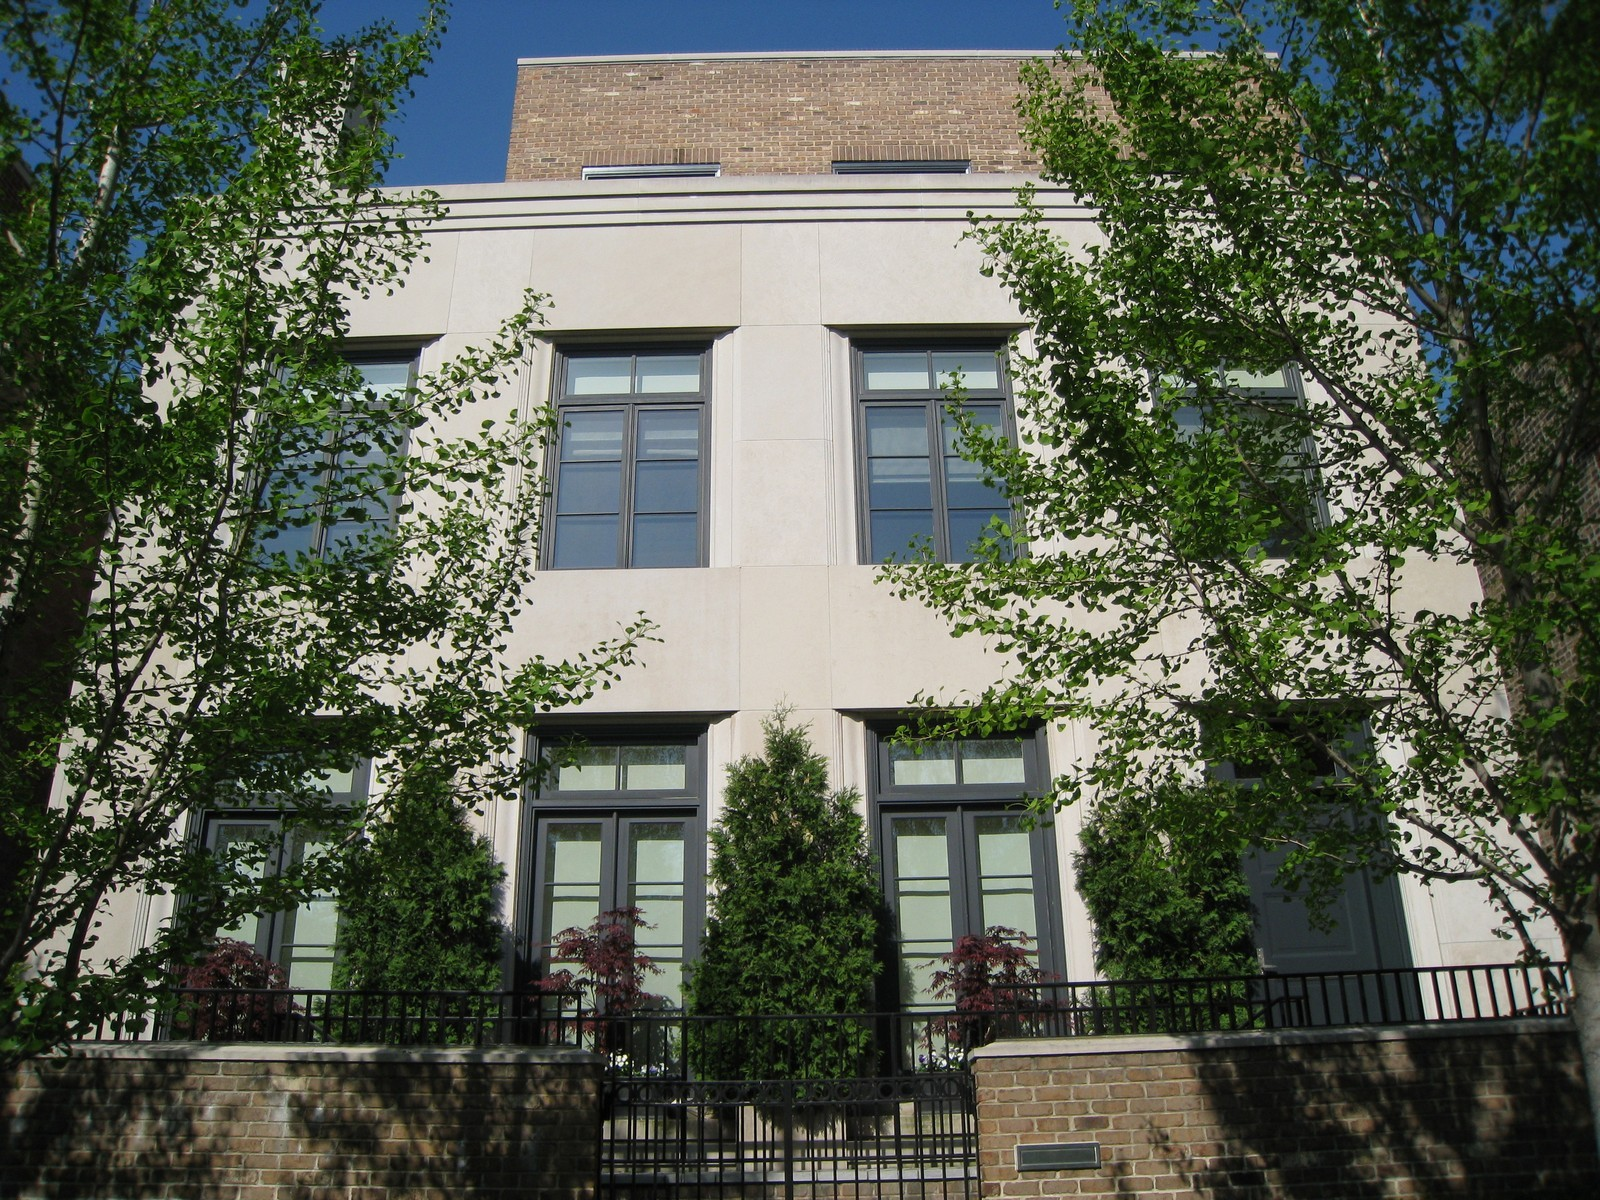 Real Estate Photography - 1866 N Howe, Chicago, IL, 60614 - Exterior of 1866 North Howe Street